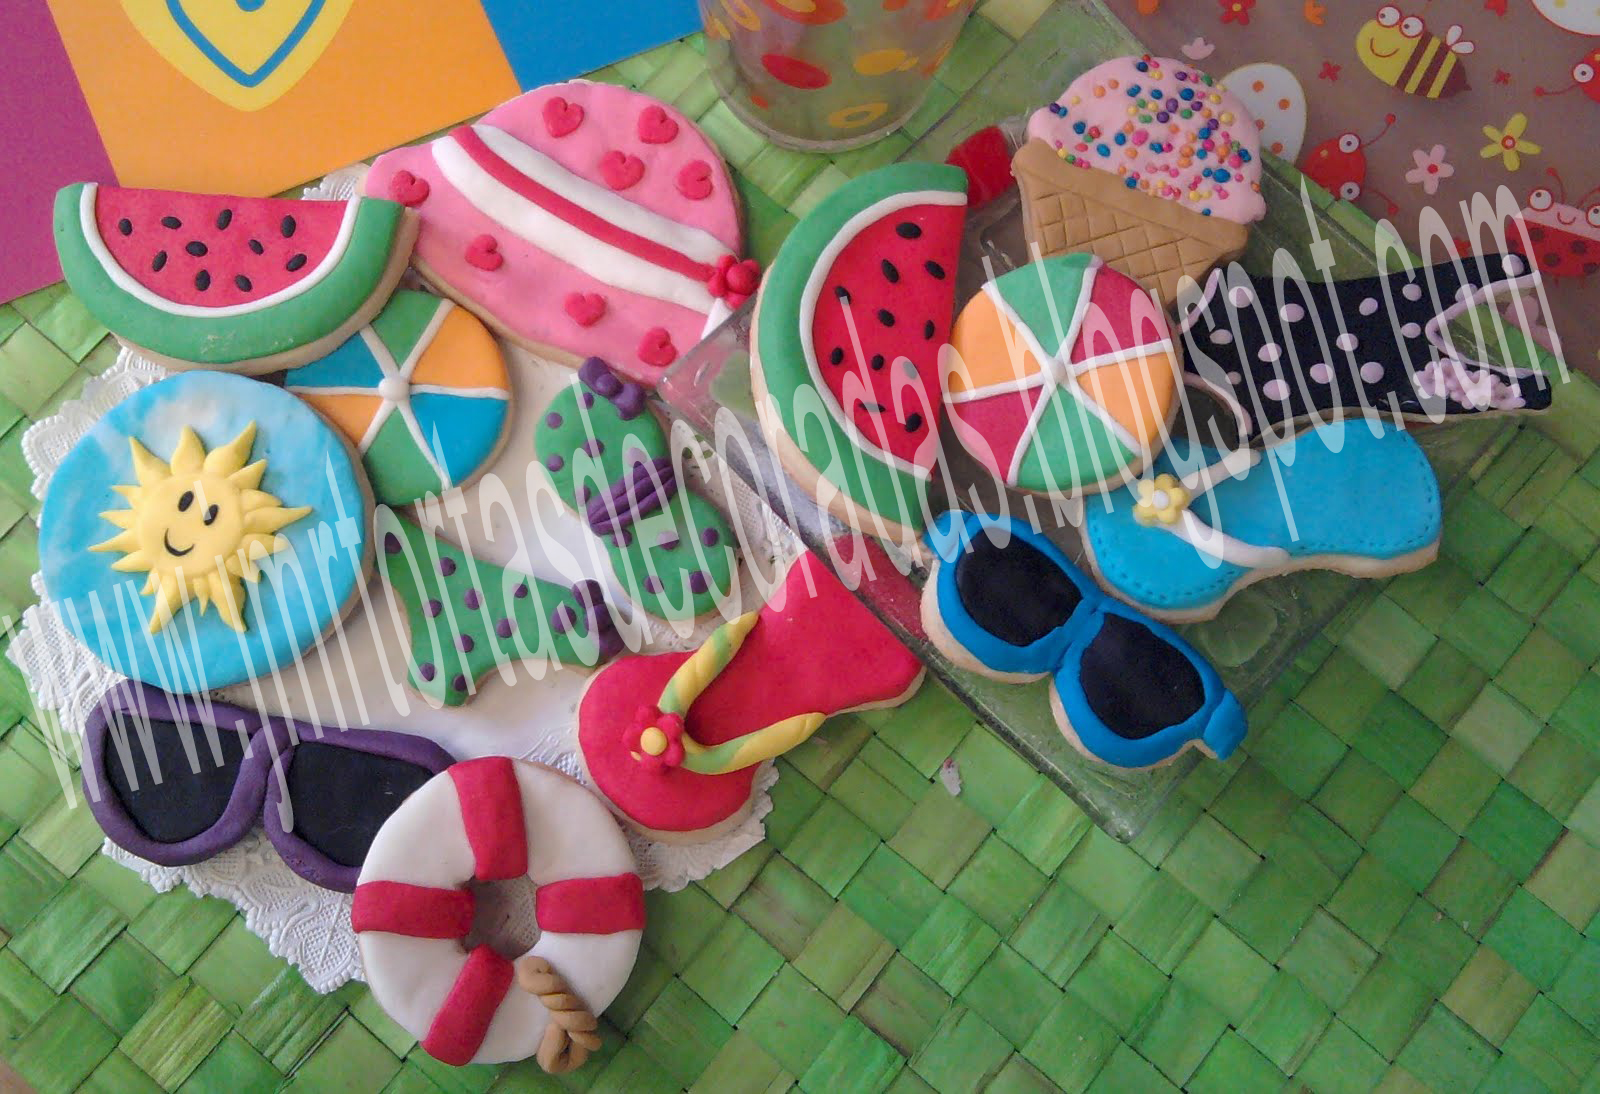 Playeras Decoradas Cookies Playeras Jmr Tortas Decoradas